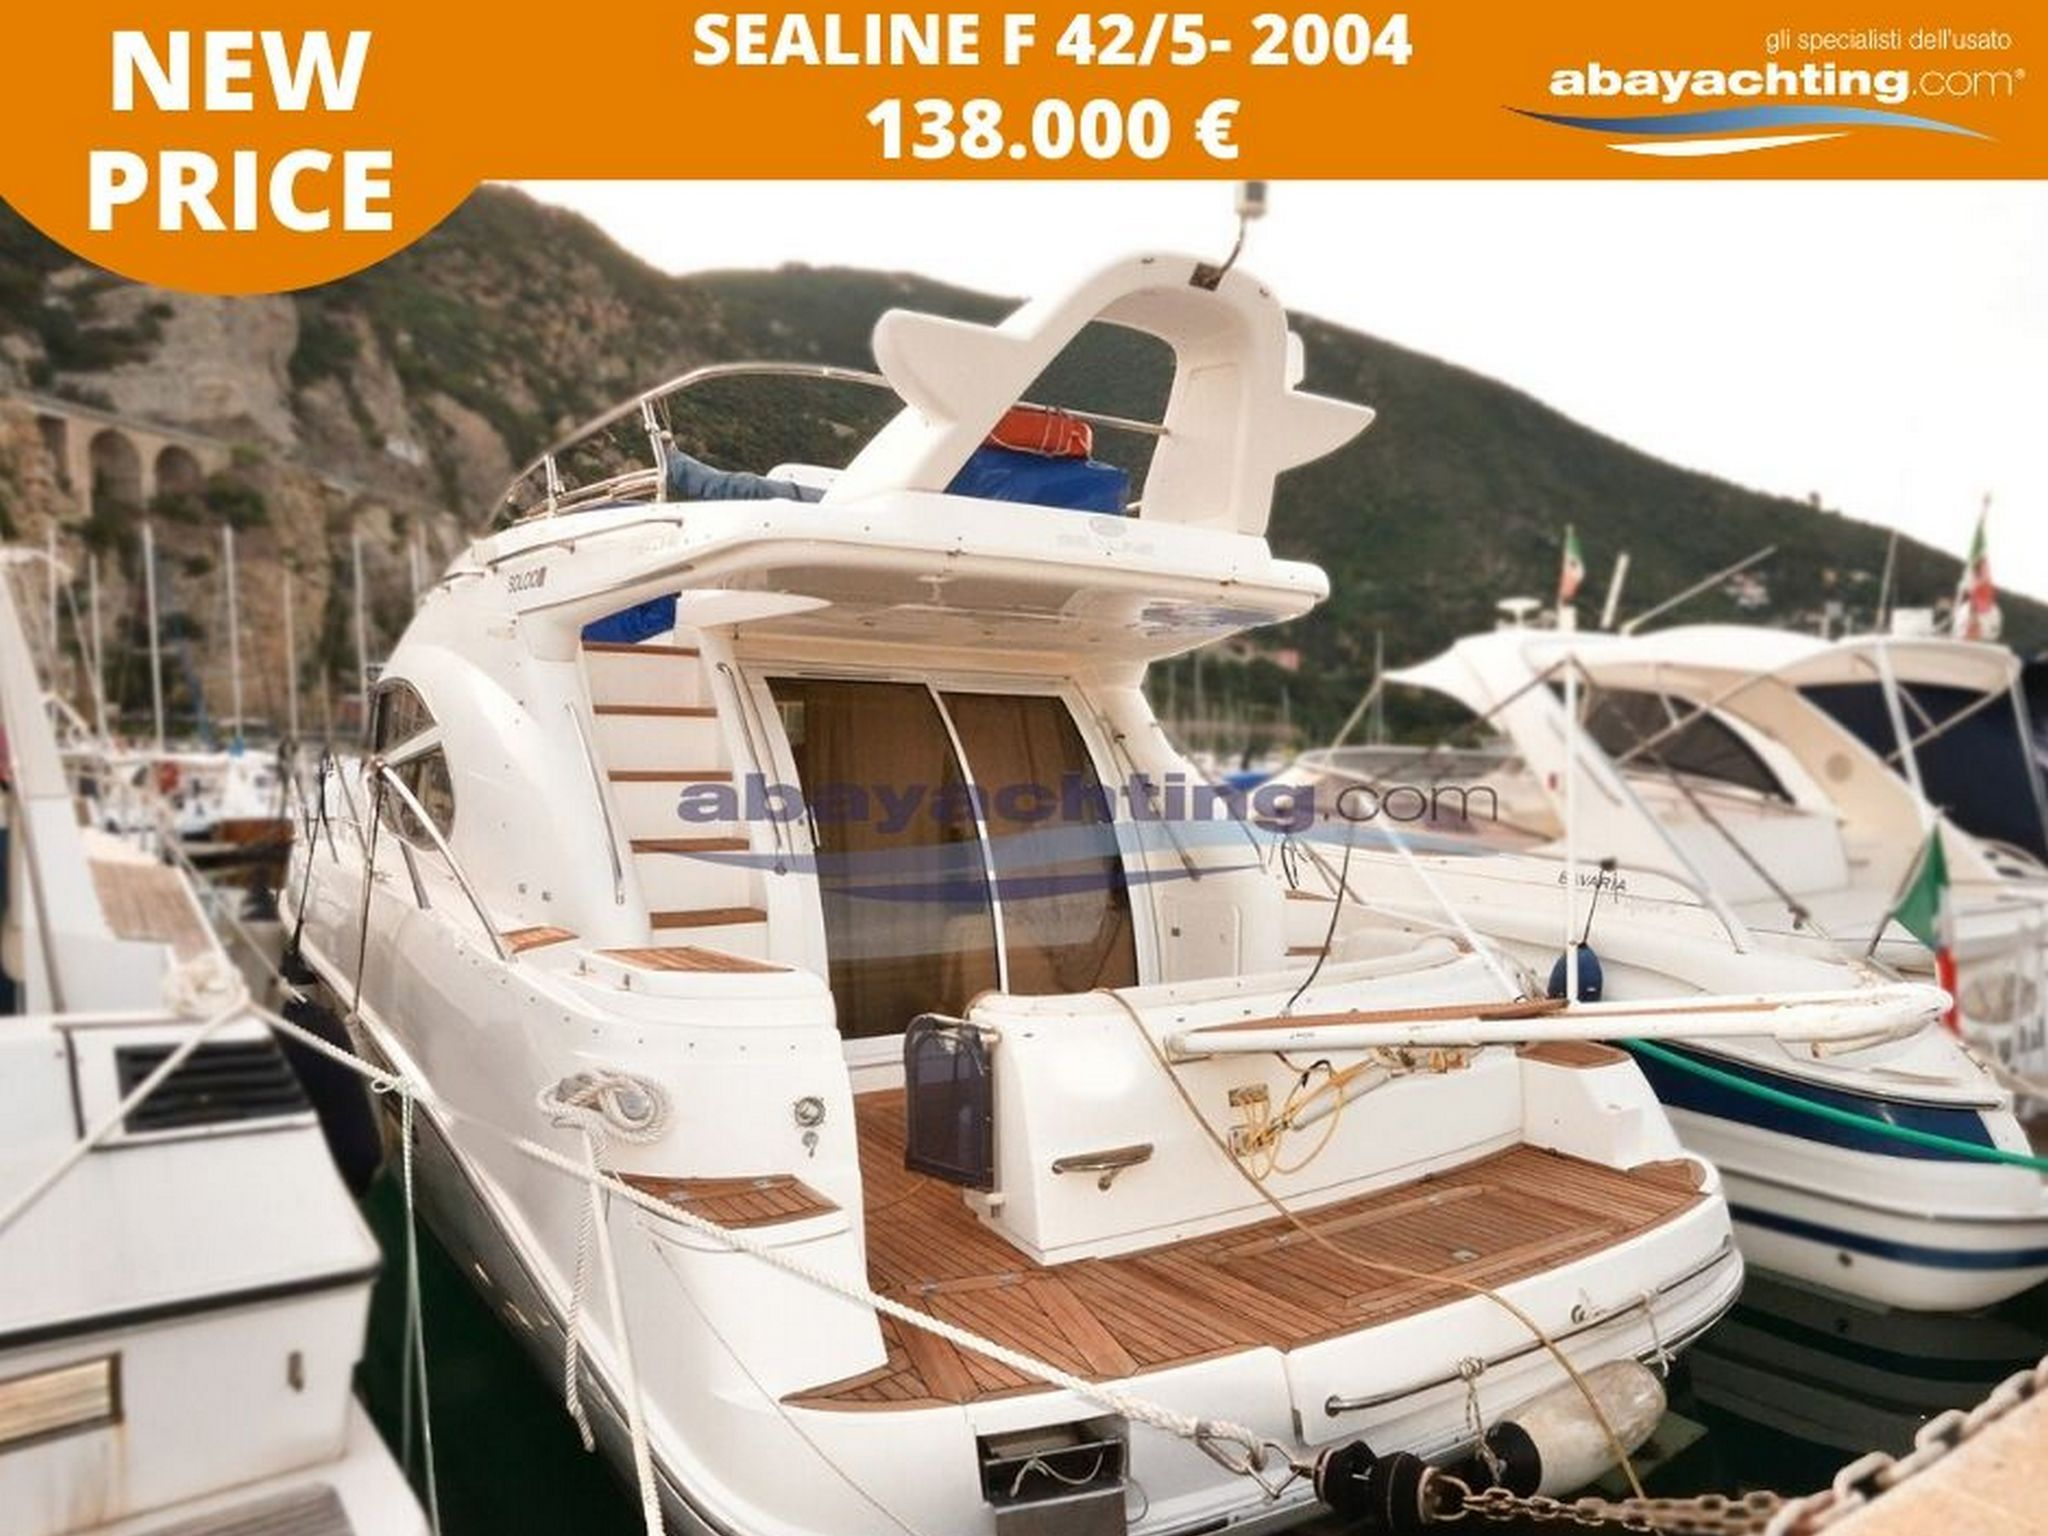 Price reduction Sealine F 42/5